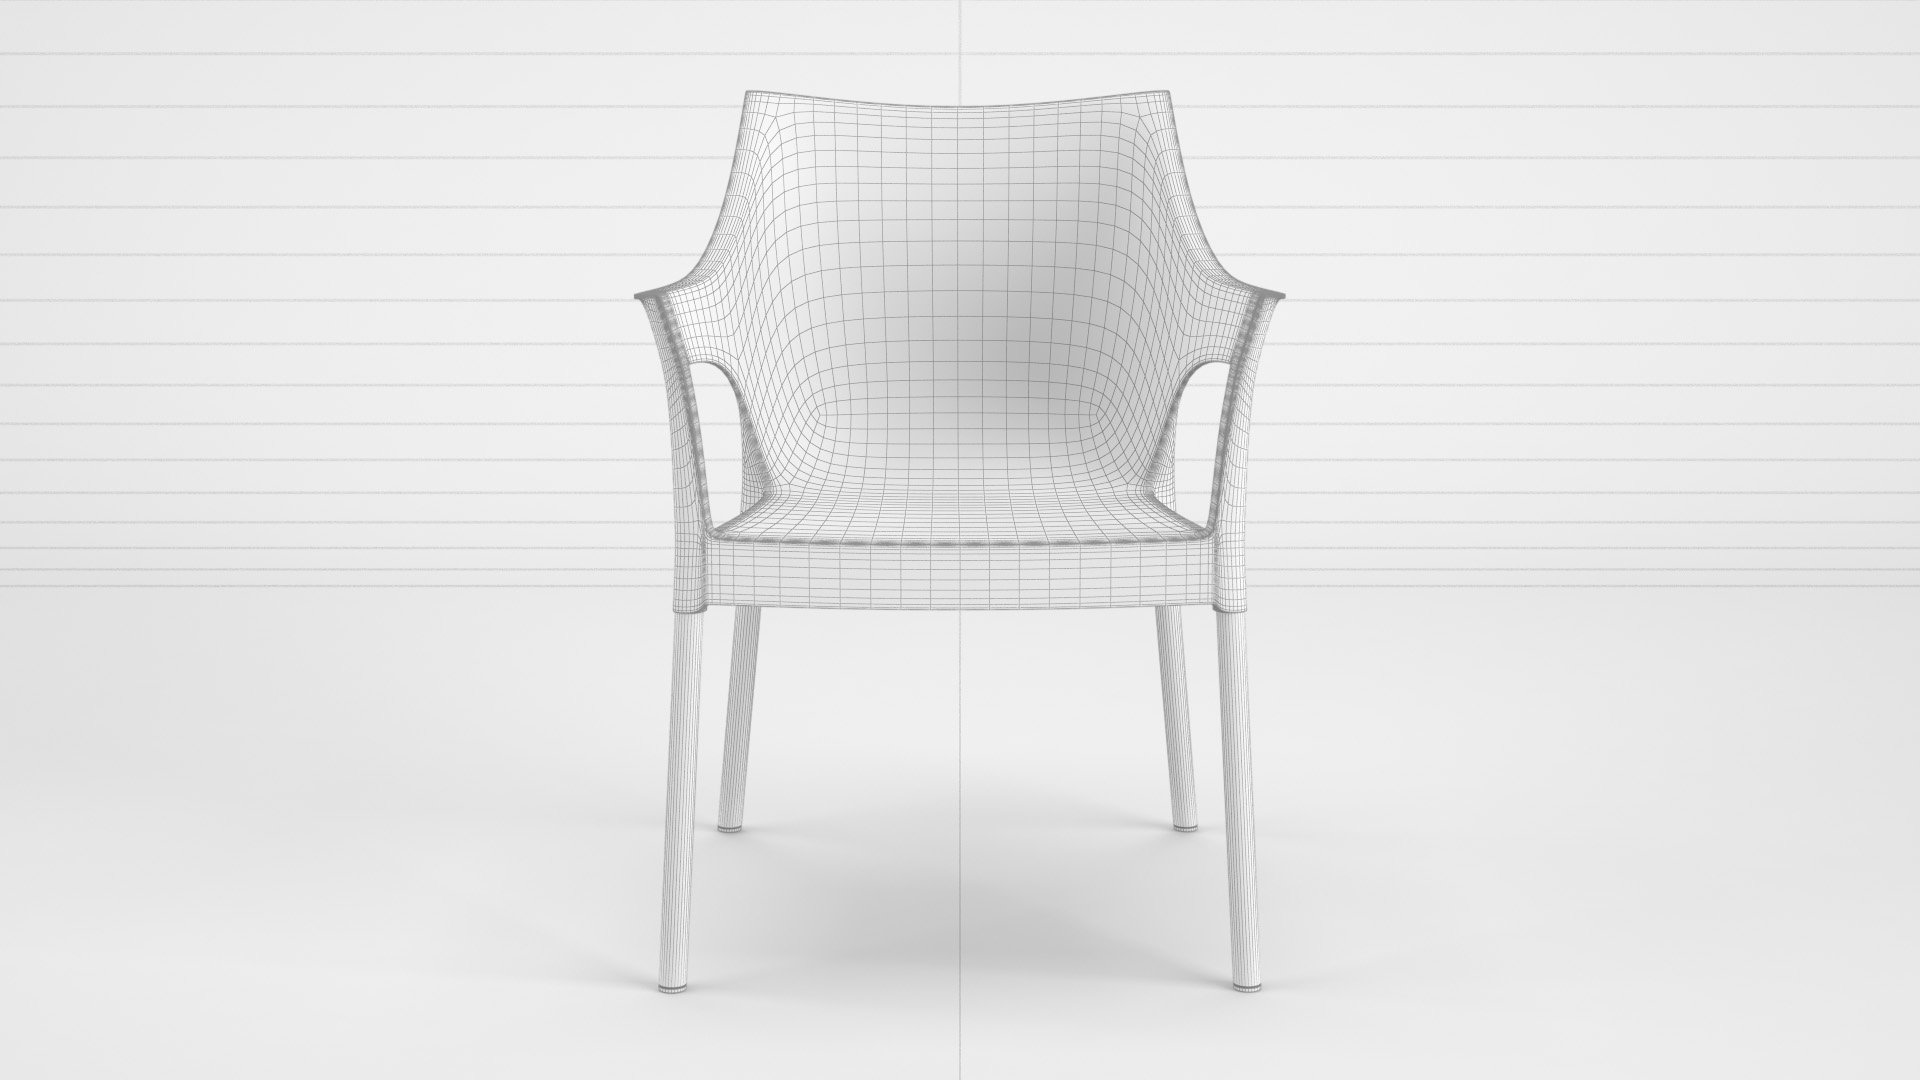 Pole_Chair_WhiteSet_01_wire_0001